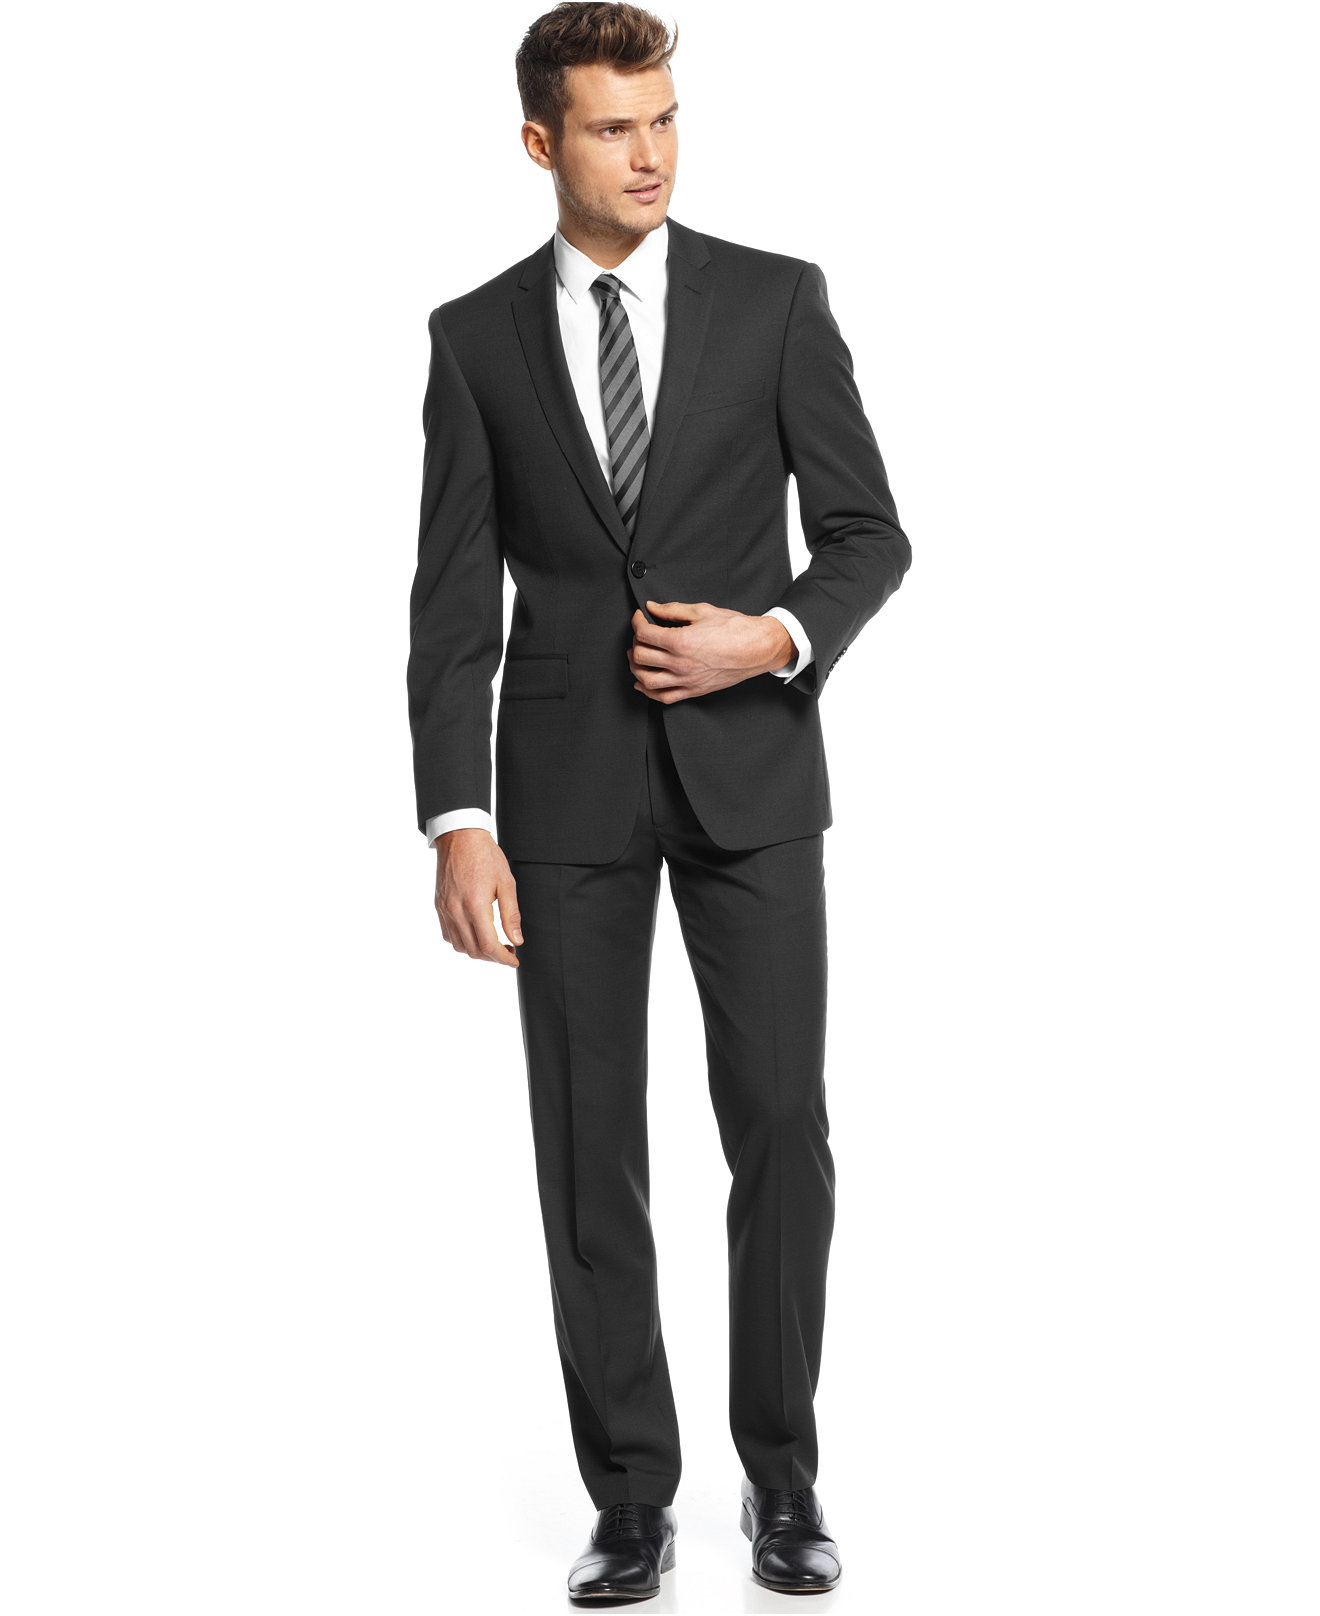 DKNY Black Pindot Suit Separates Extra Slim Fit - Suits & Suit